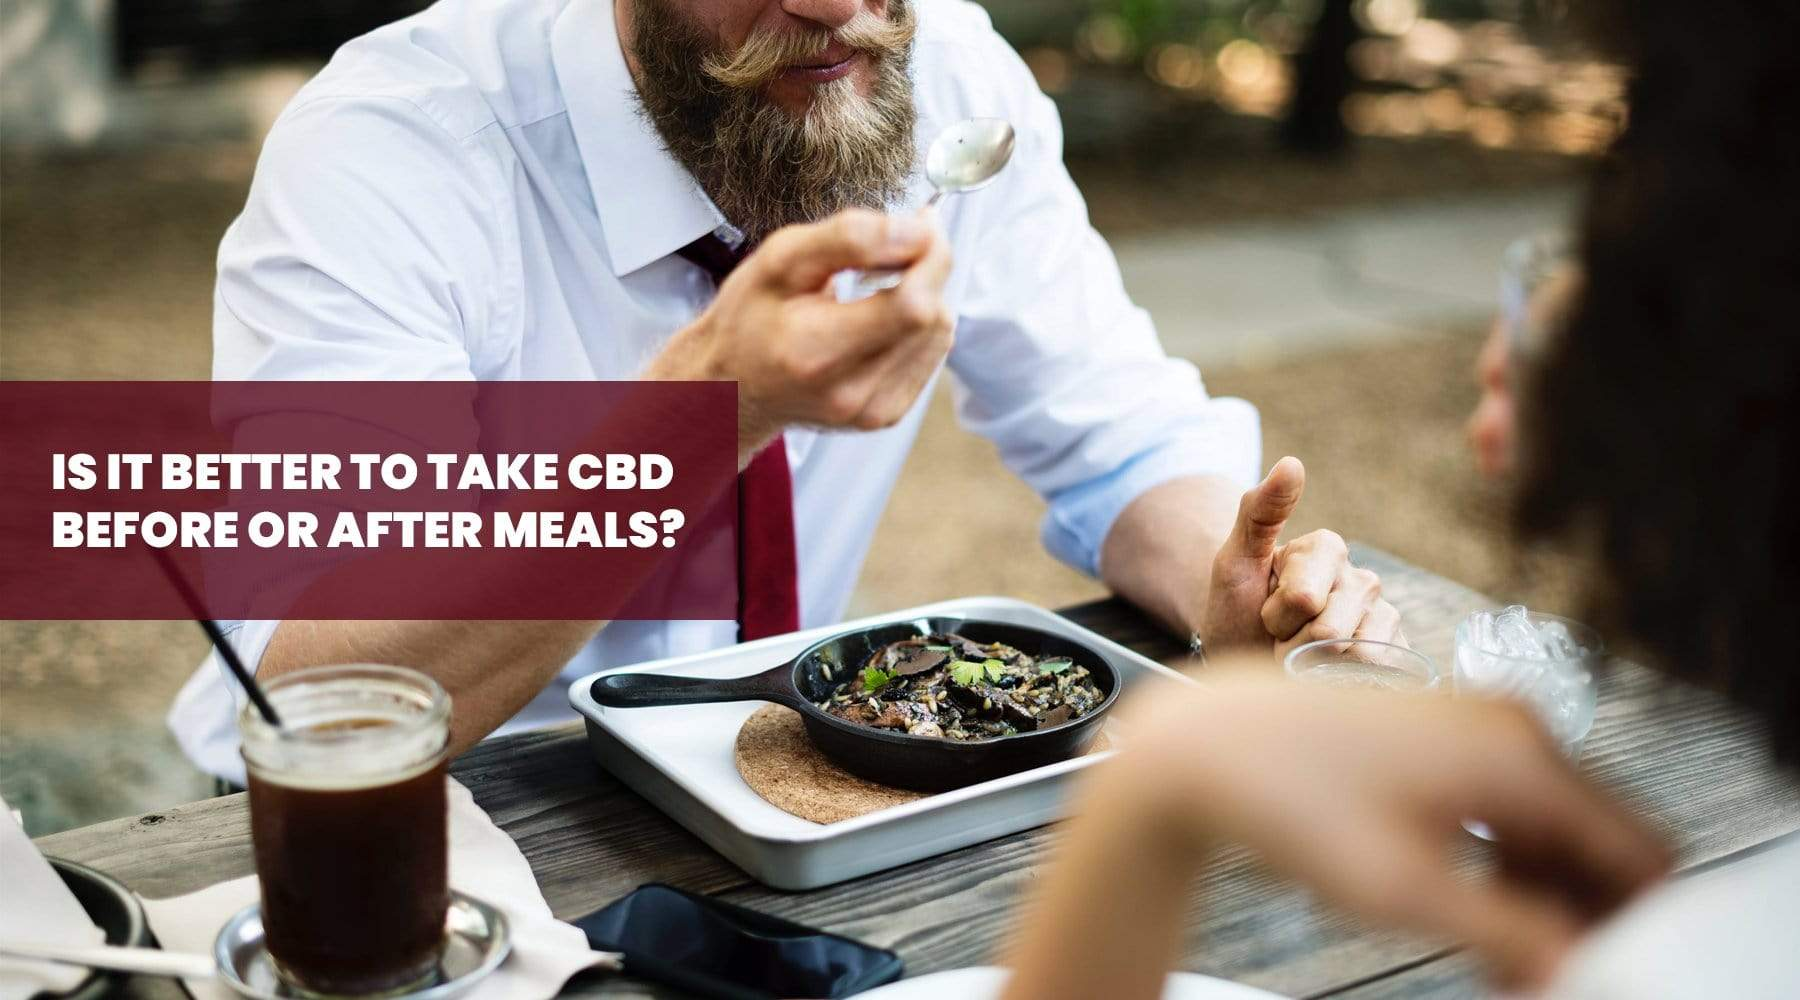 Is It Better to Take CBD Oil Before or After Meals?